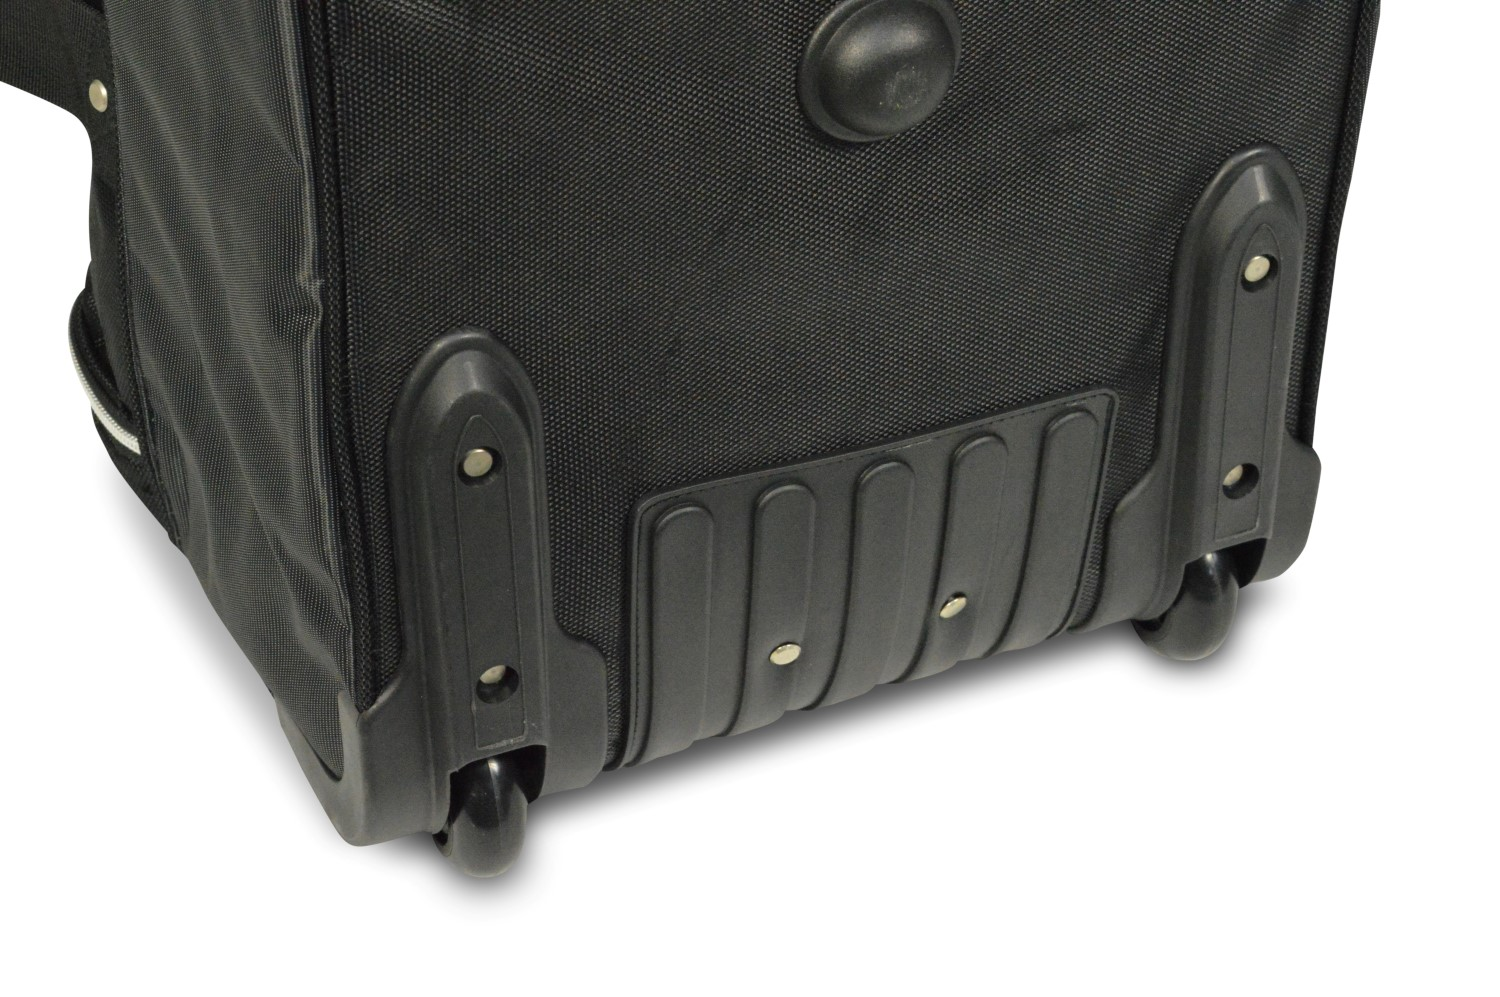 Each Car-Bags trolley bag has sturdy rubber wheels, which ensures optimal rolling